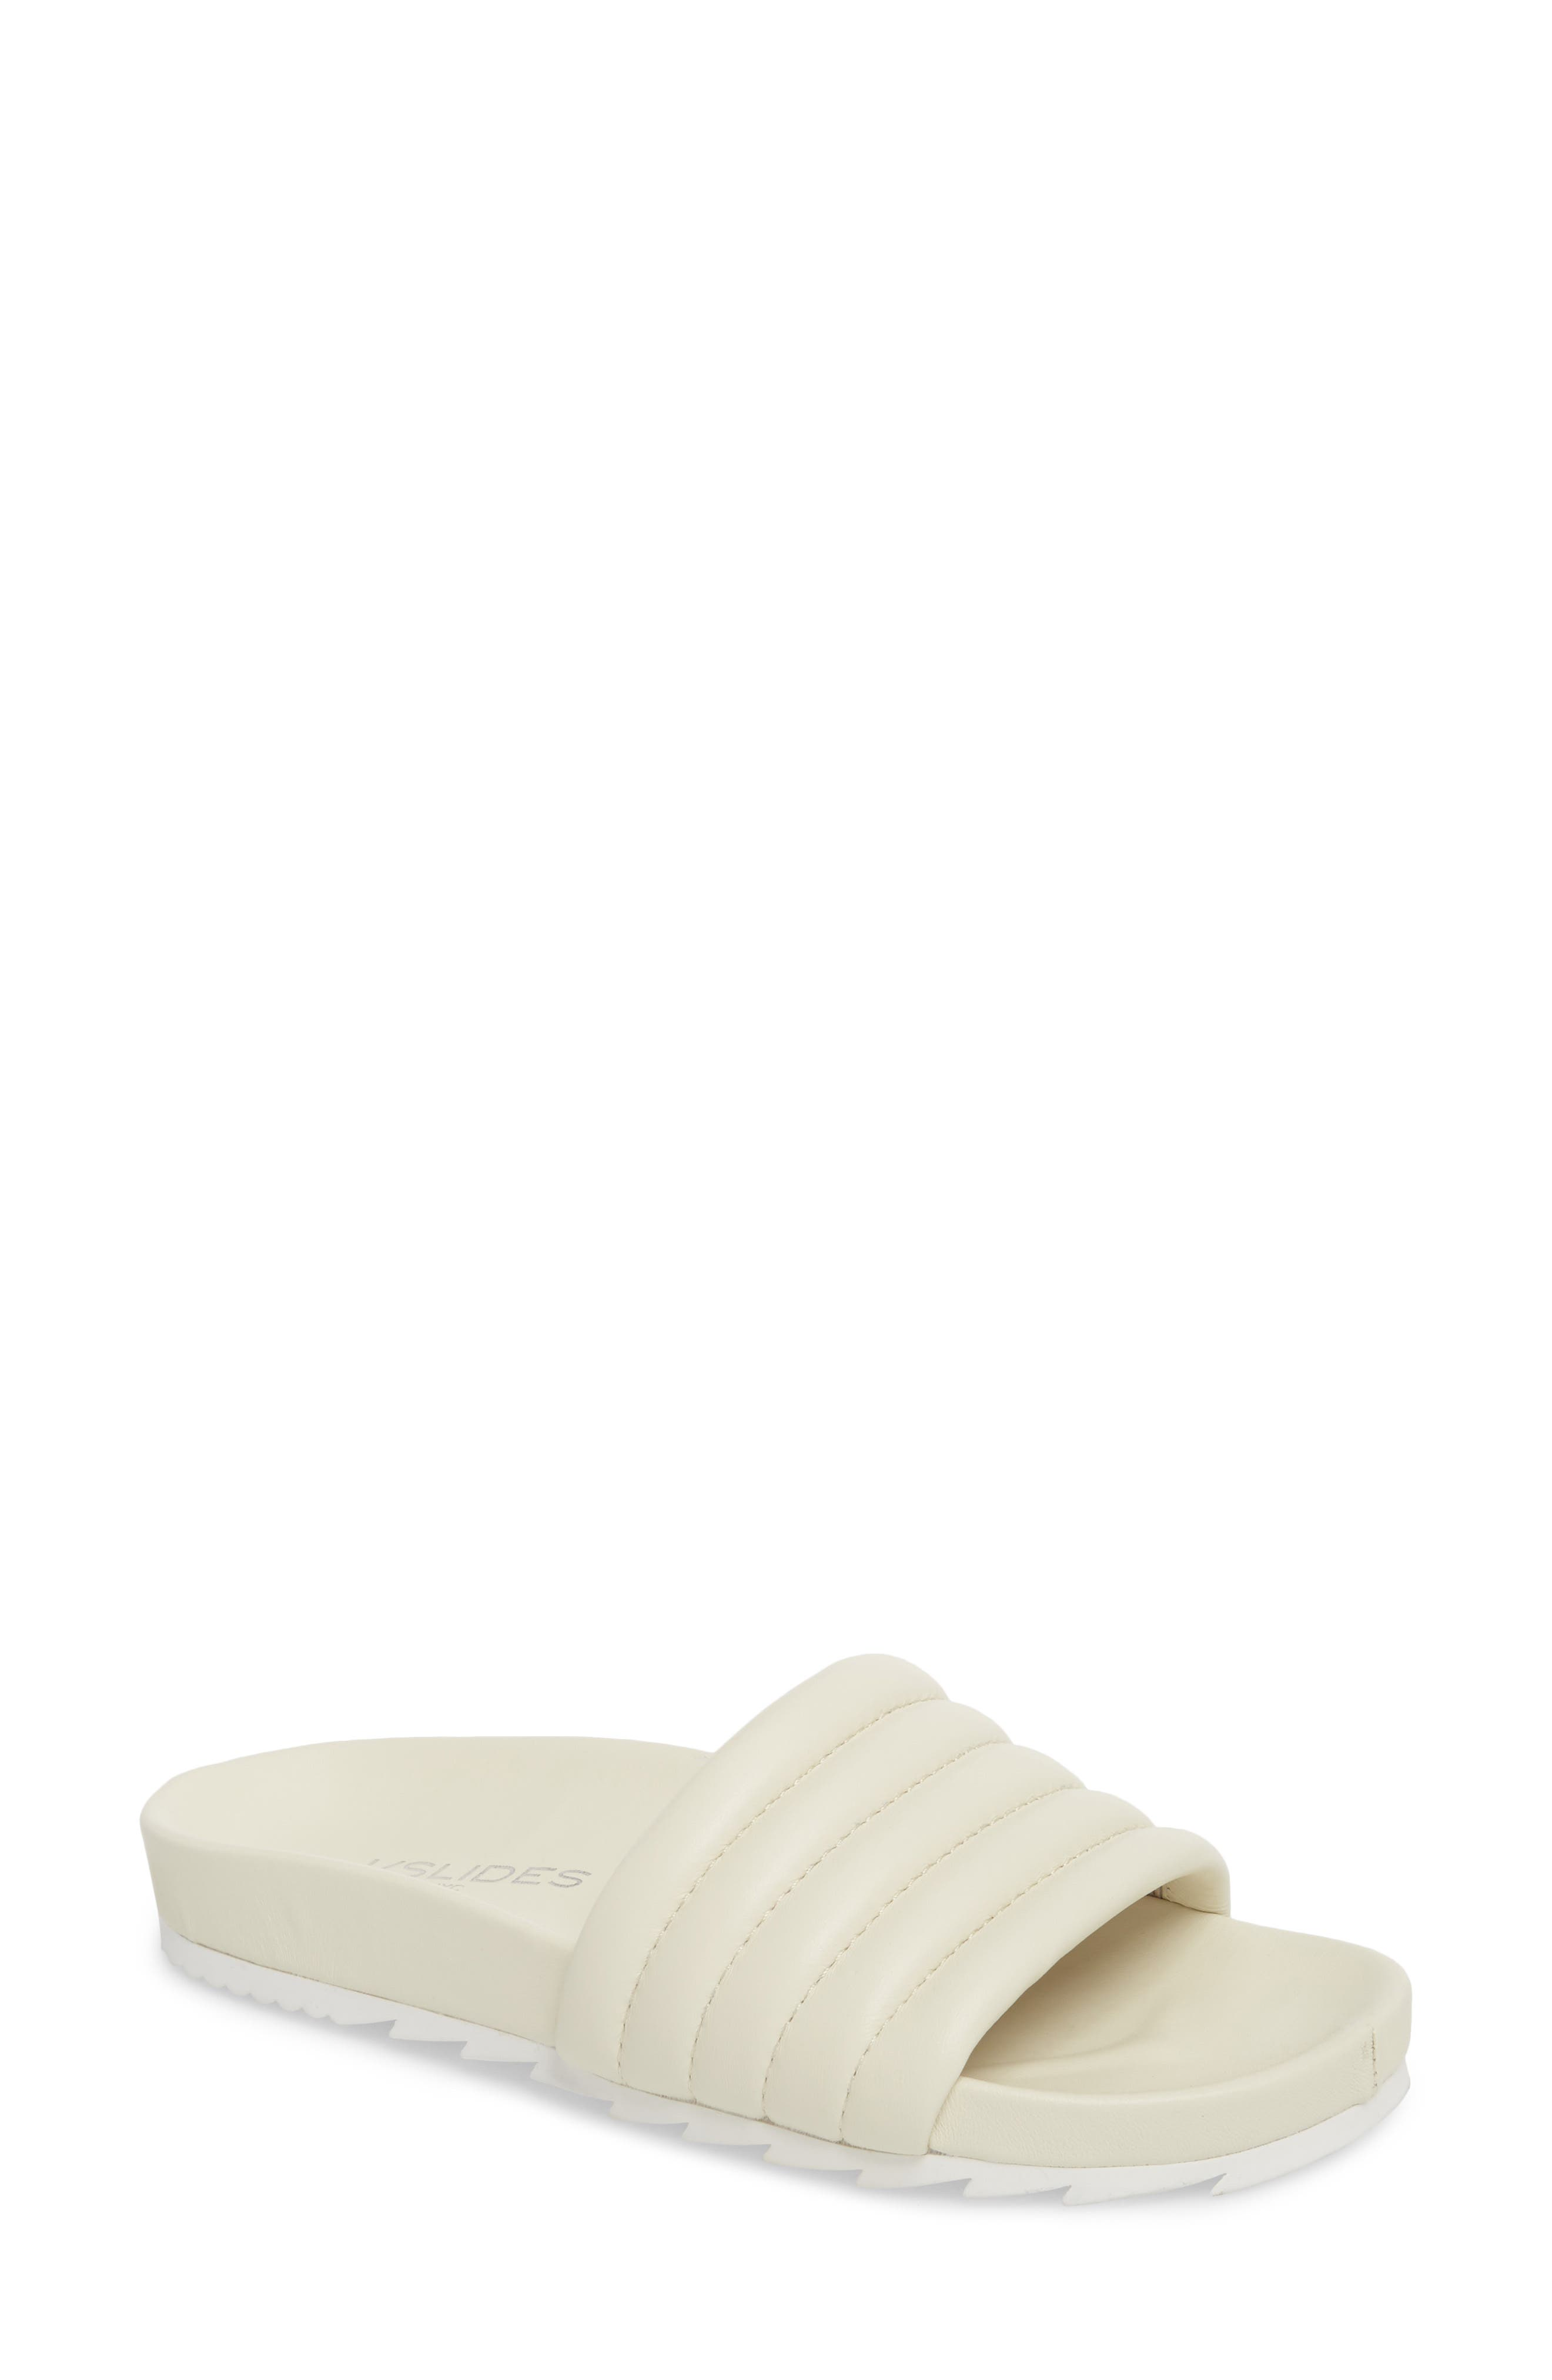 JSLIDES Eppie Slide Sandal, Main, color, OFF WHITE LEATHER